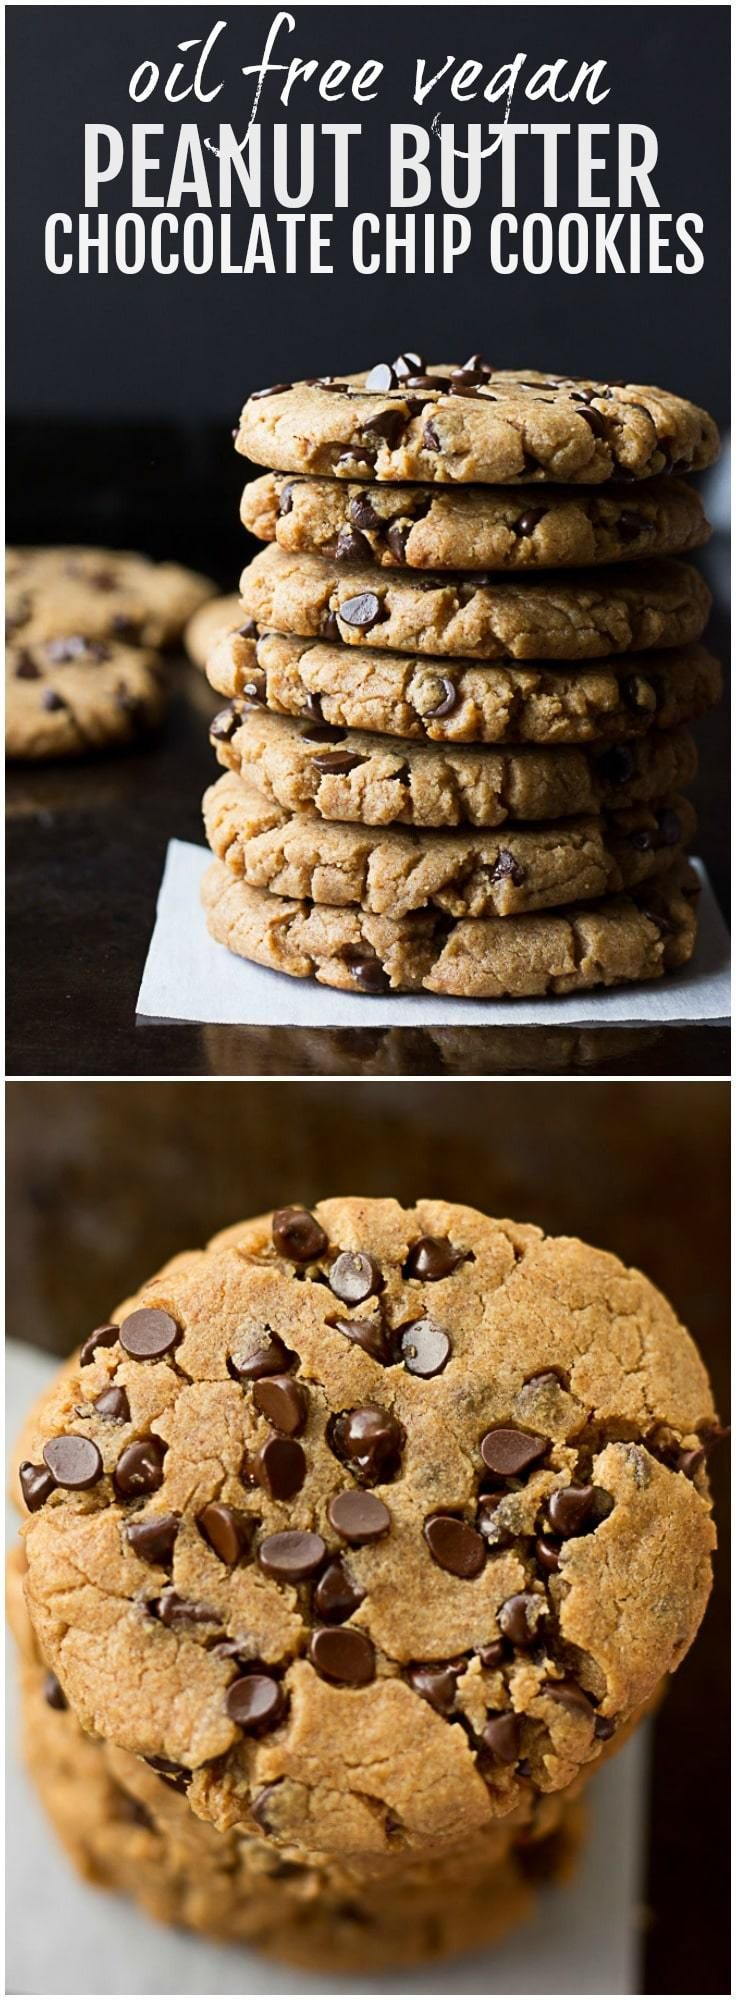 Oil Free Peanut Butter Chocolate Chip Cookies Englisch Vegan Chocolate Chip Cookies Vegan Chocolate Chip Peanut Butter Chocolate Chip Cookies